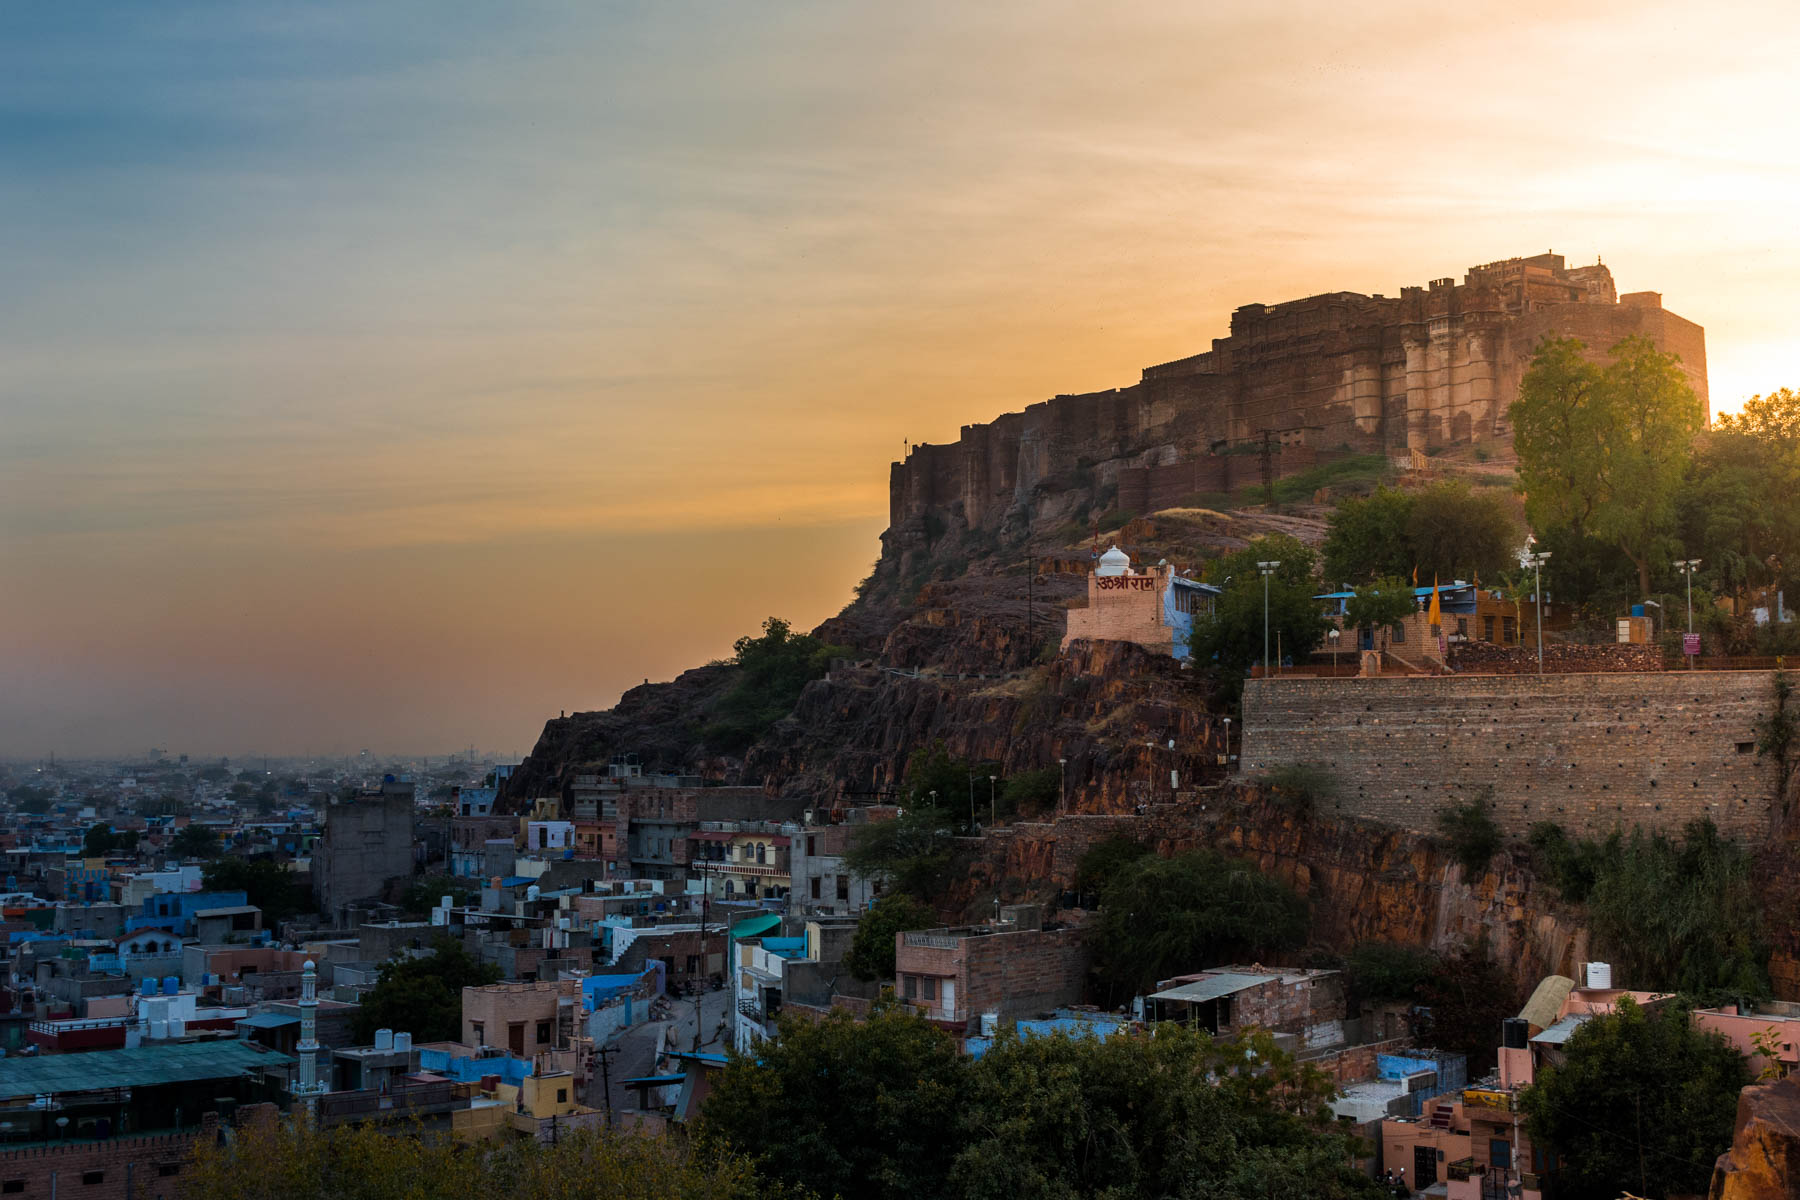 Sunset behind Mehrangarh fort in Jodhpur